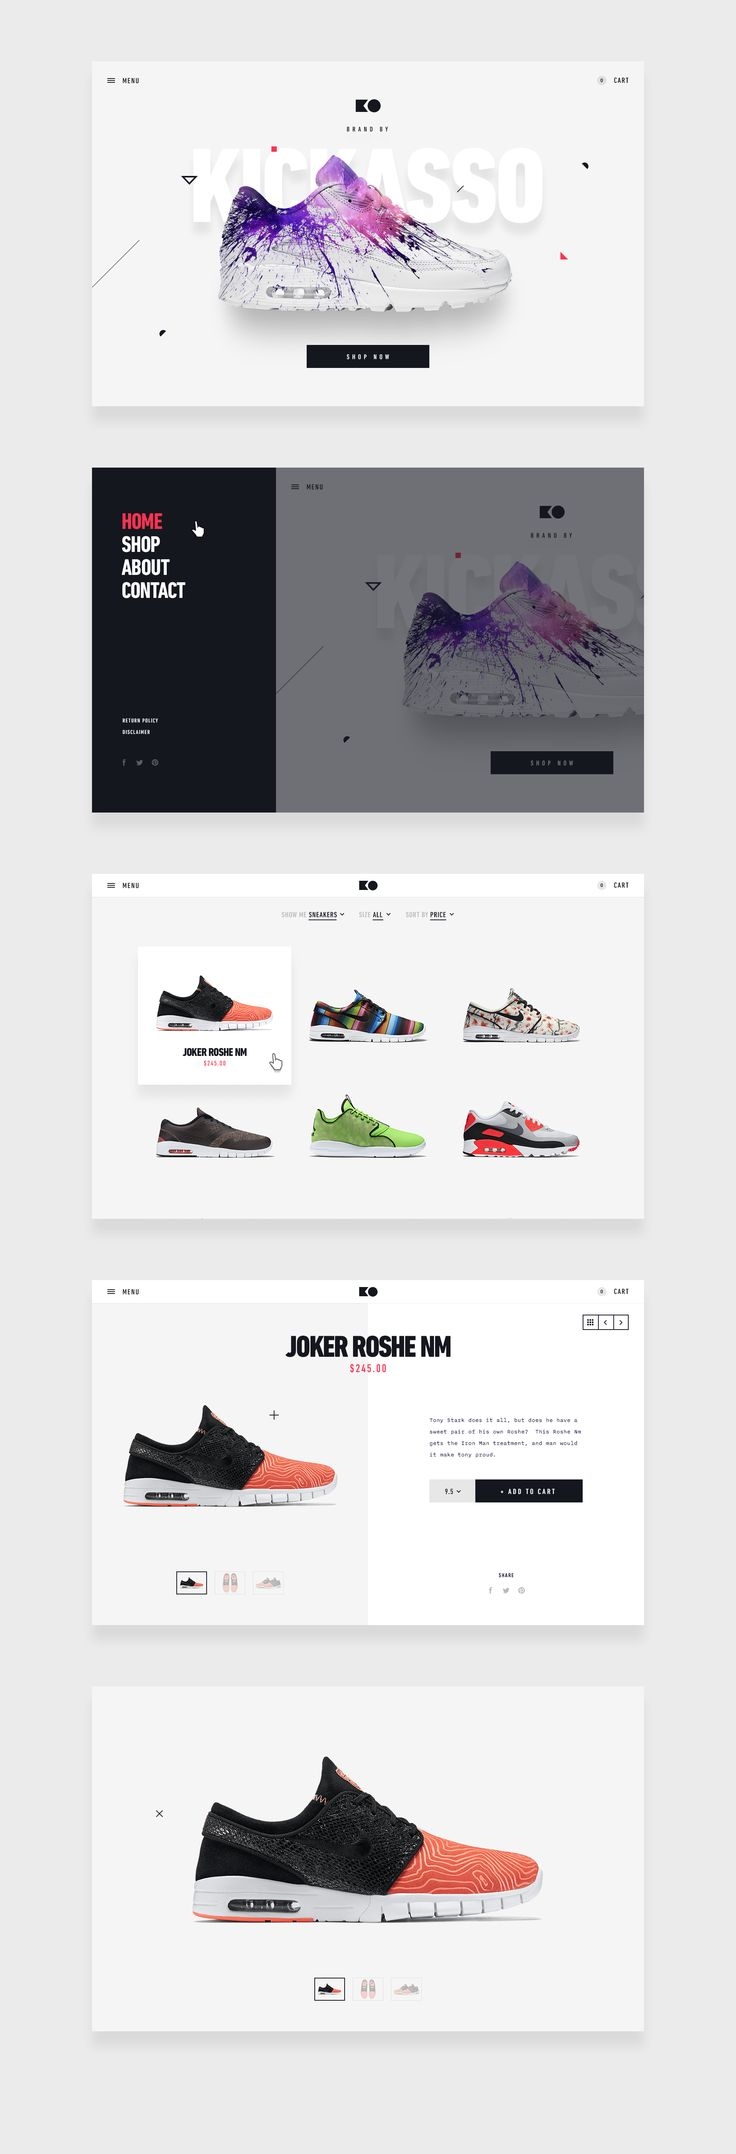 Moaaar comps of this sweet ecommerce baby.  Follow our @STRV team profile for more! http://ecommerce.jrstudioweb.com/